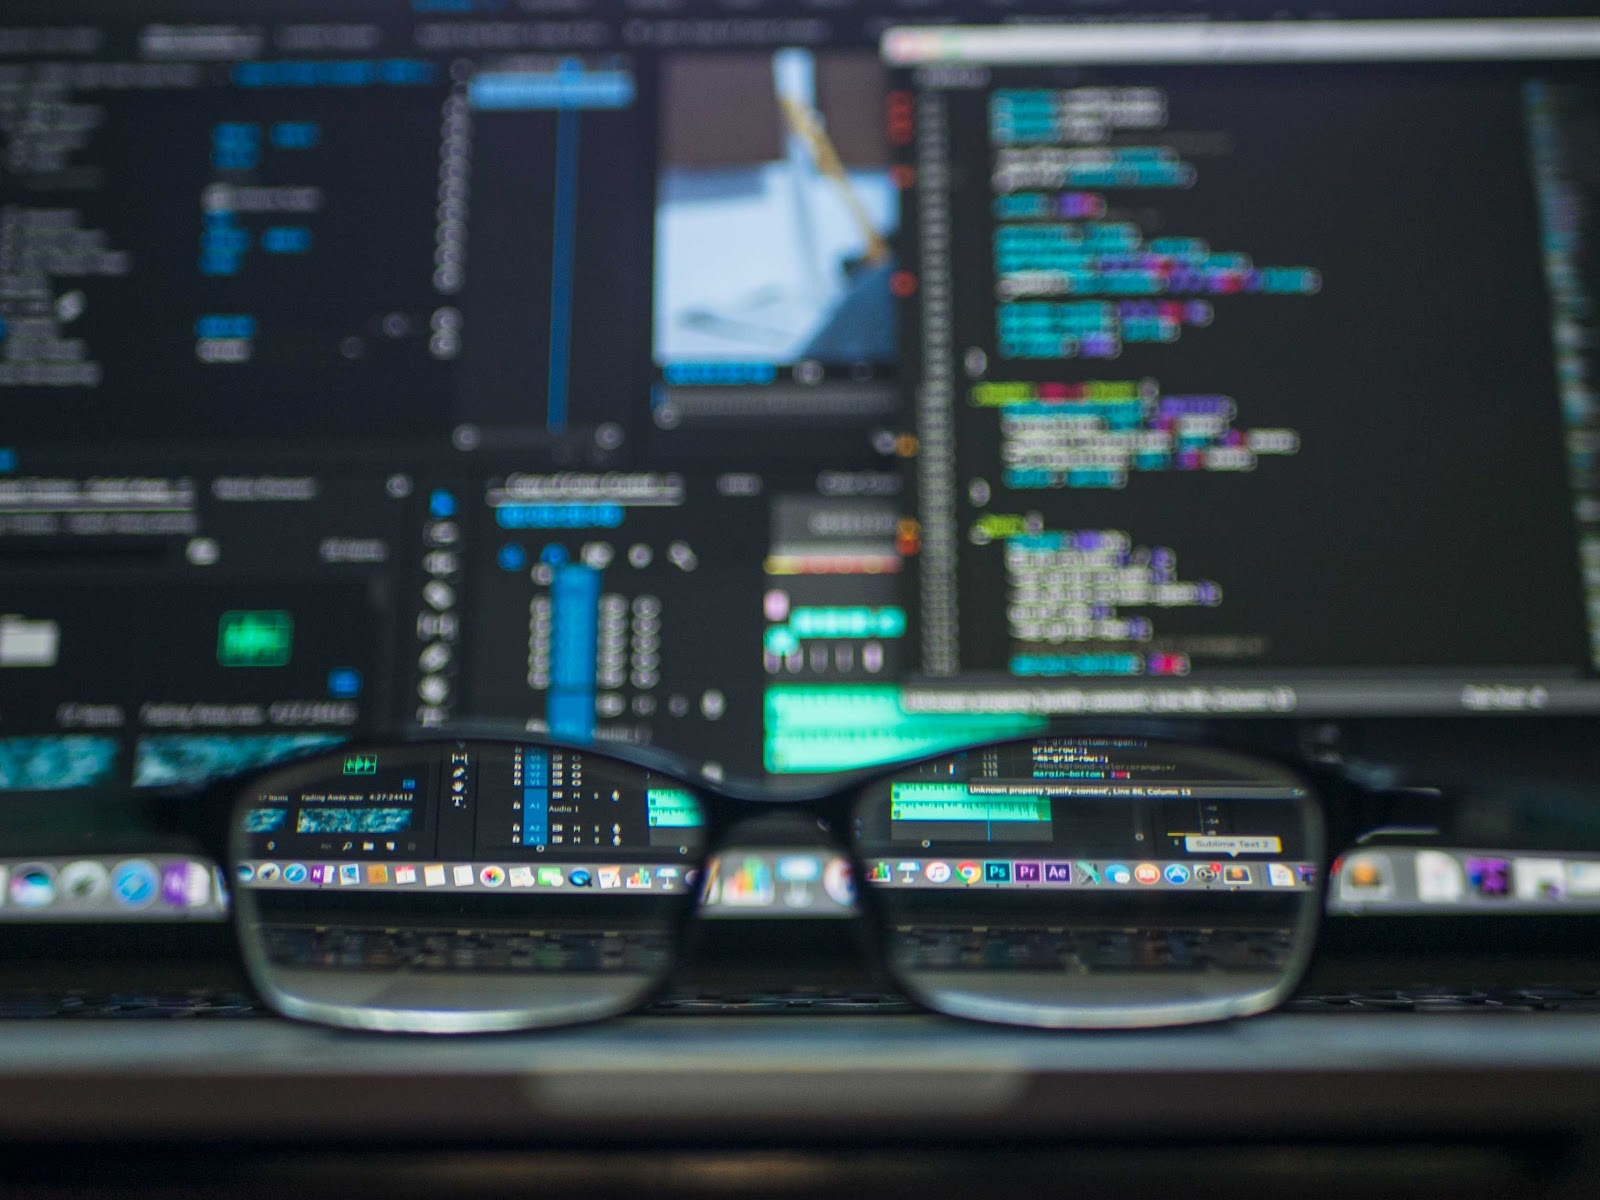 Code on a computer screen as seen through spectacles